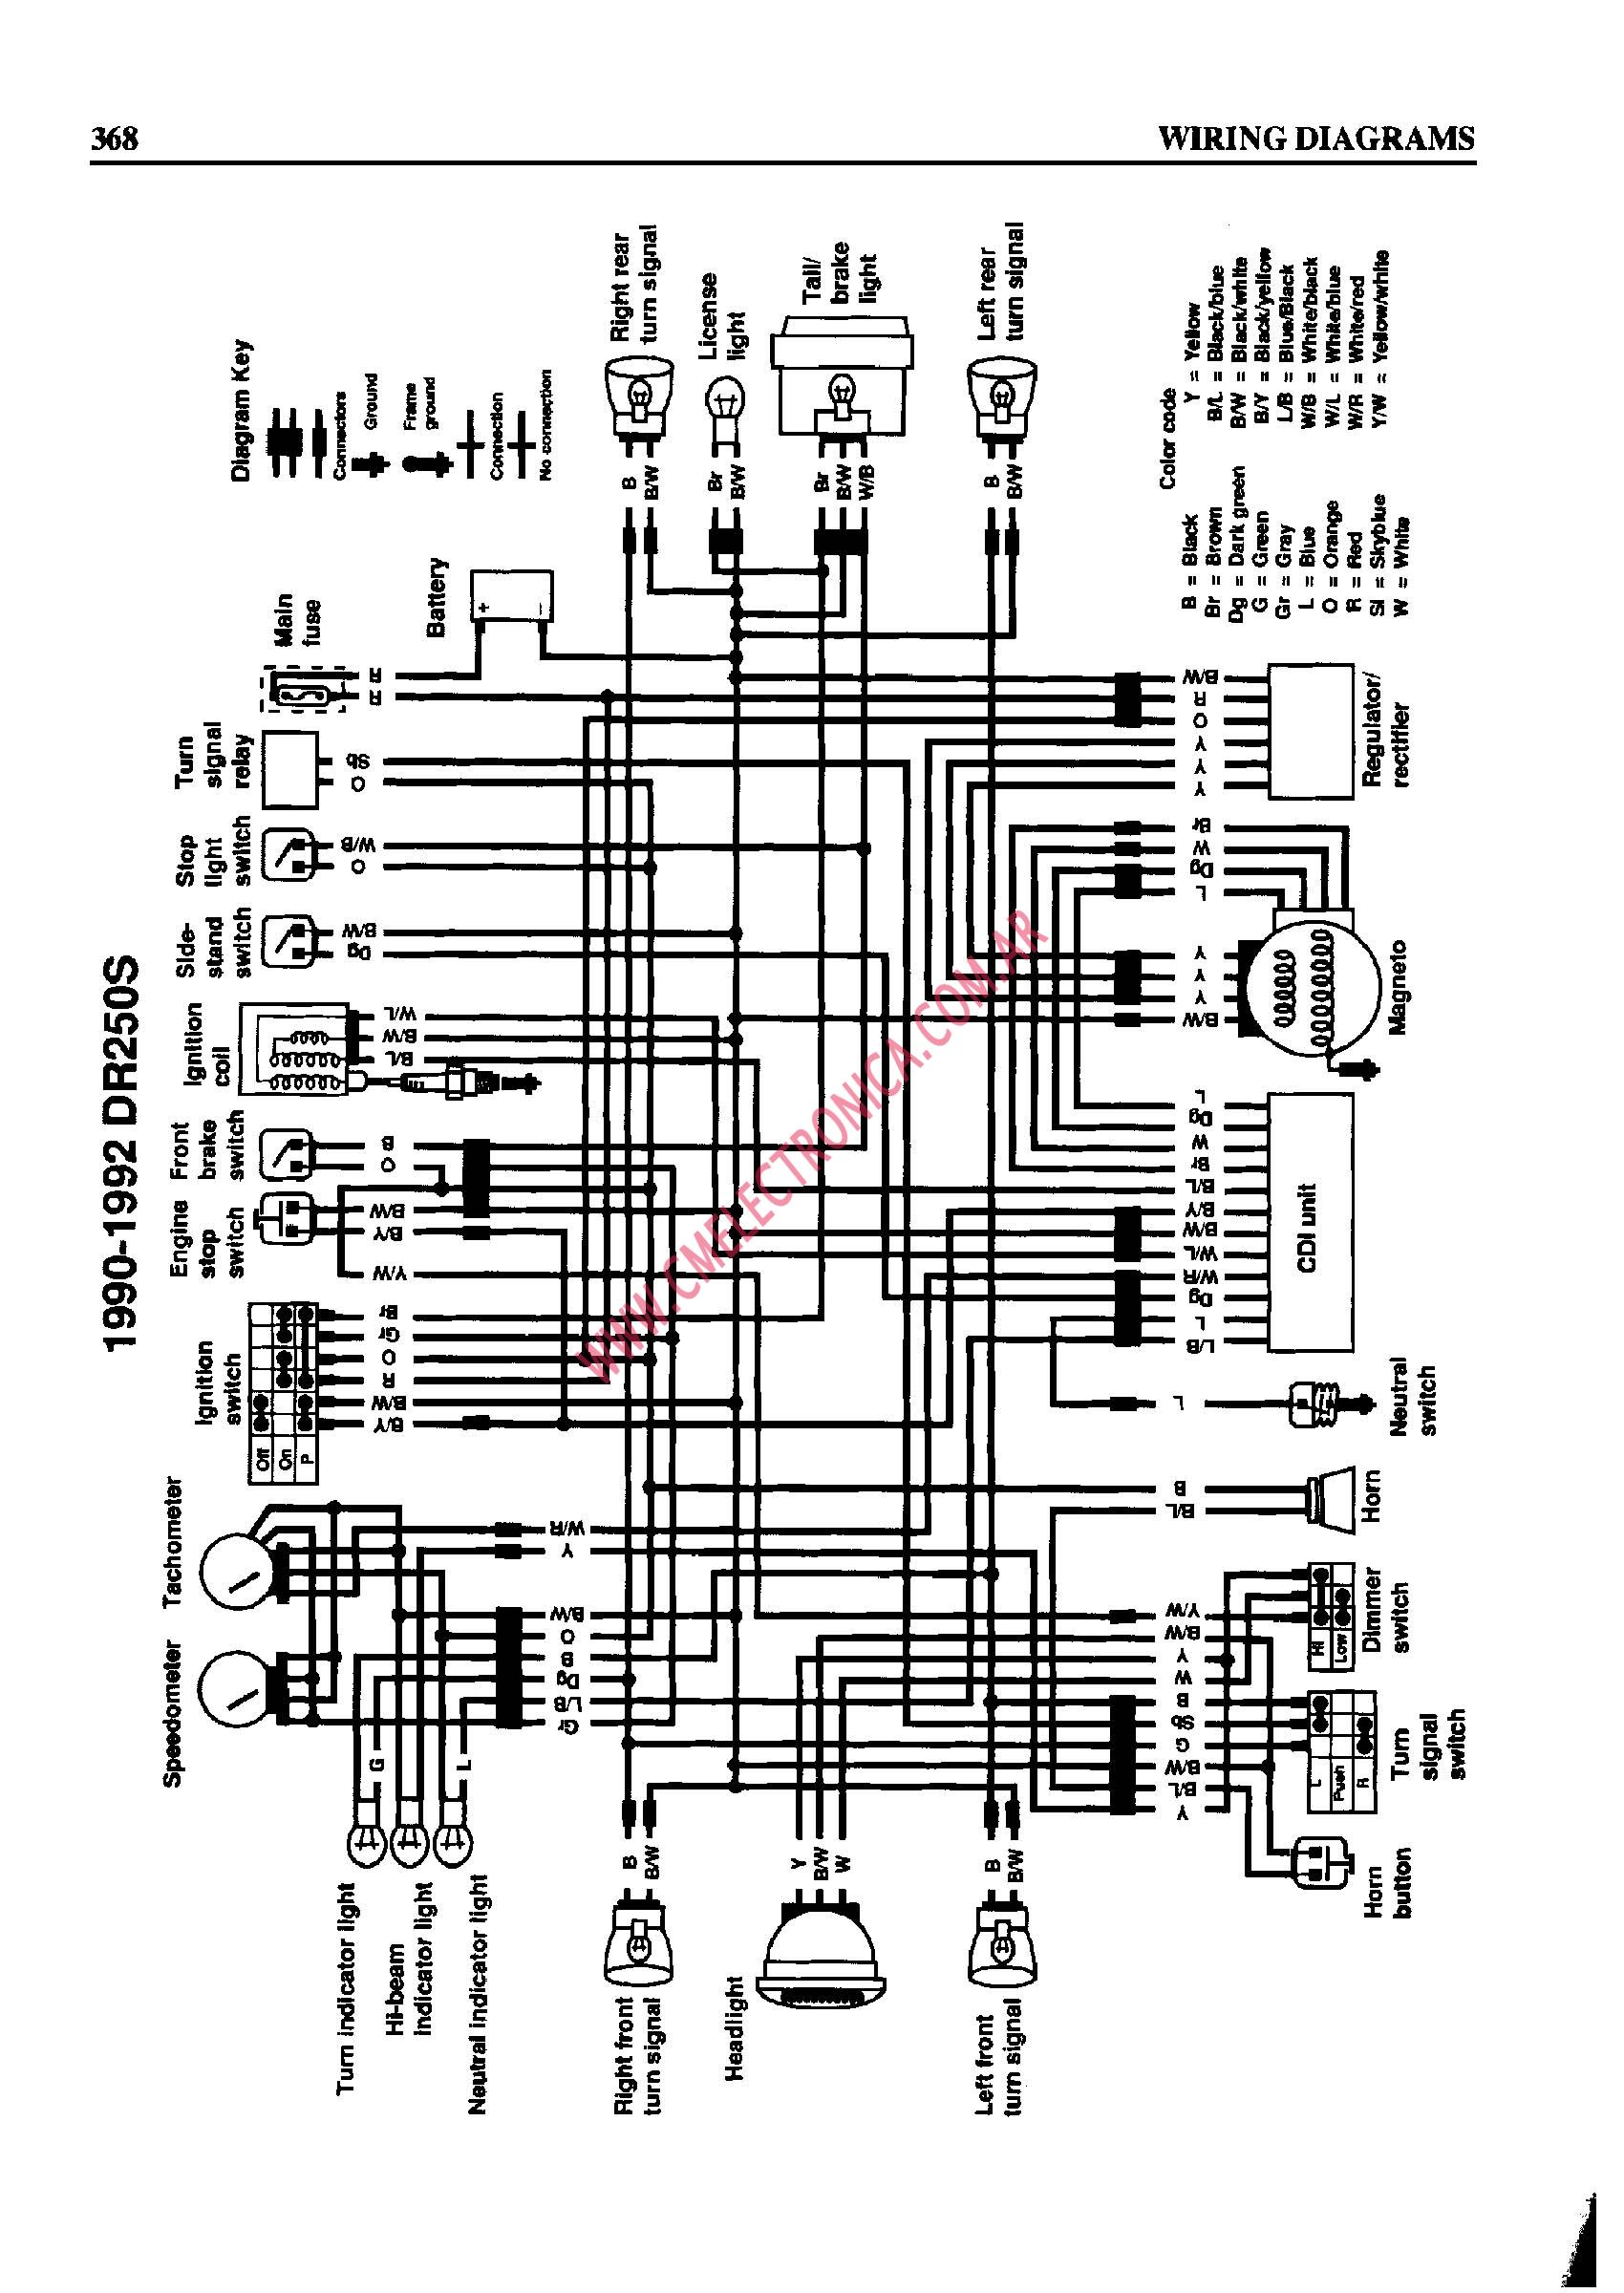 suzuki dr250 dr350 se 250 wiring diagram switched outlet wiring diagram \u2022 wiring e250 wiring diagram at soozxer.org